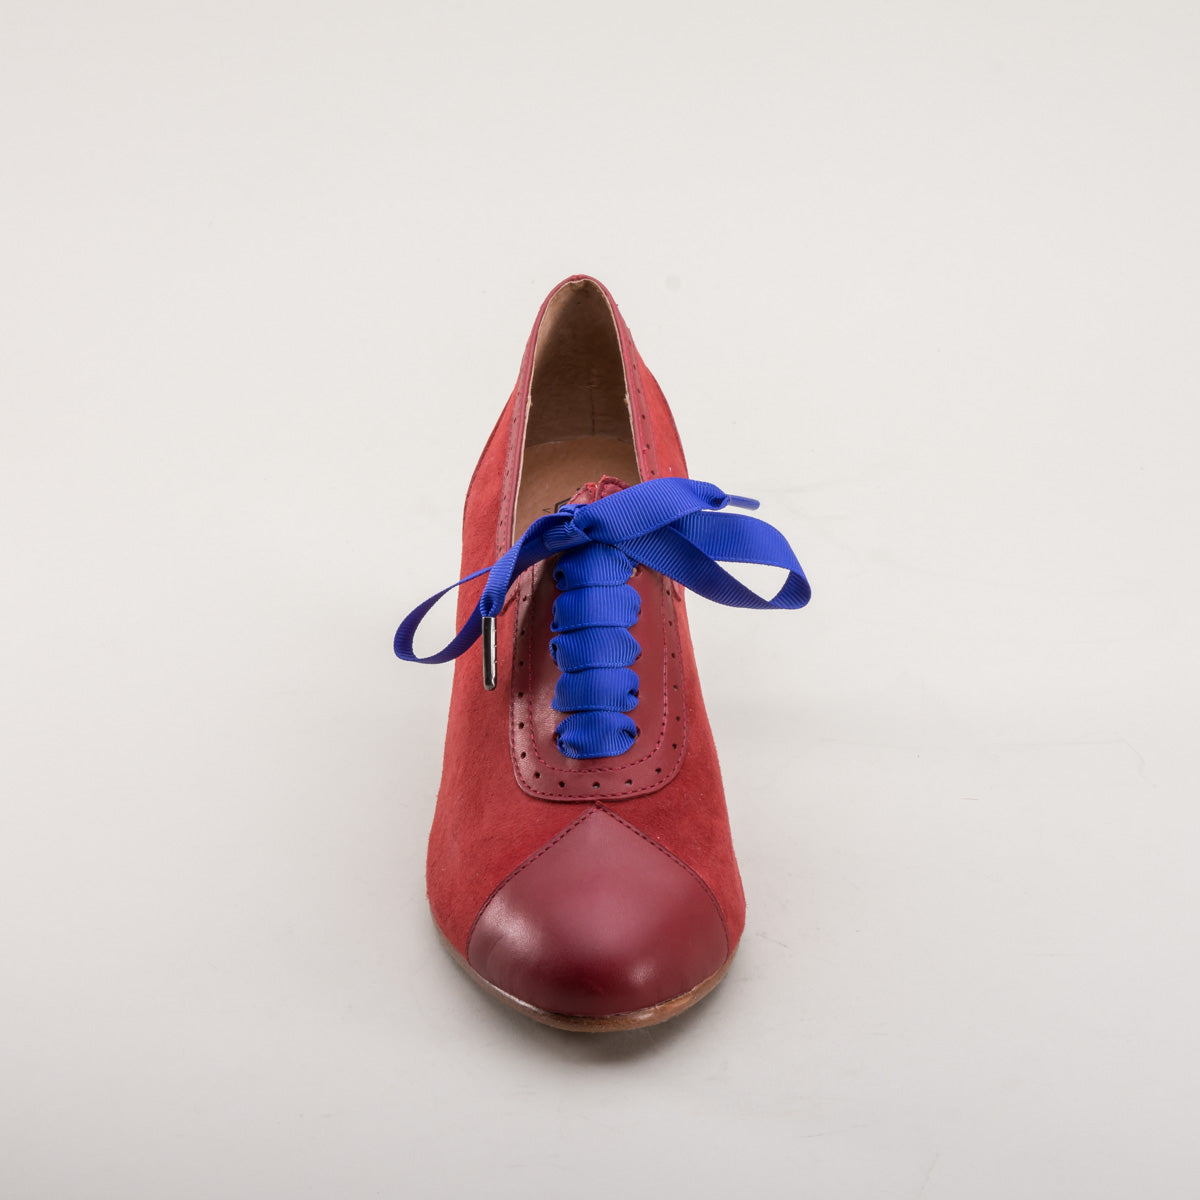 Poppy Retro Oxfords (Red)